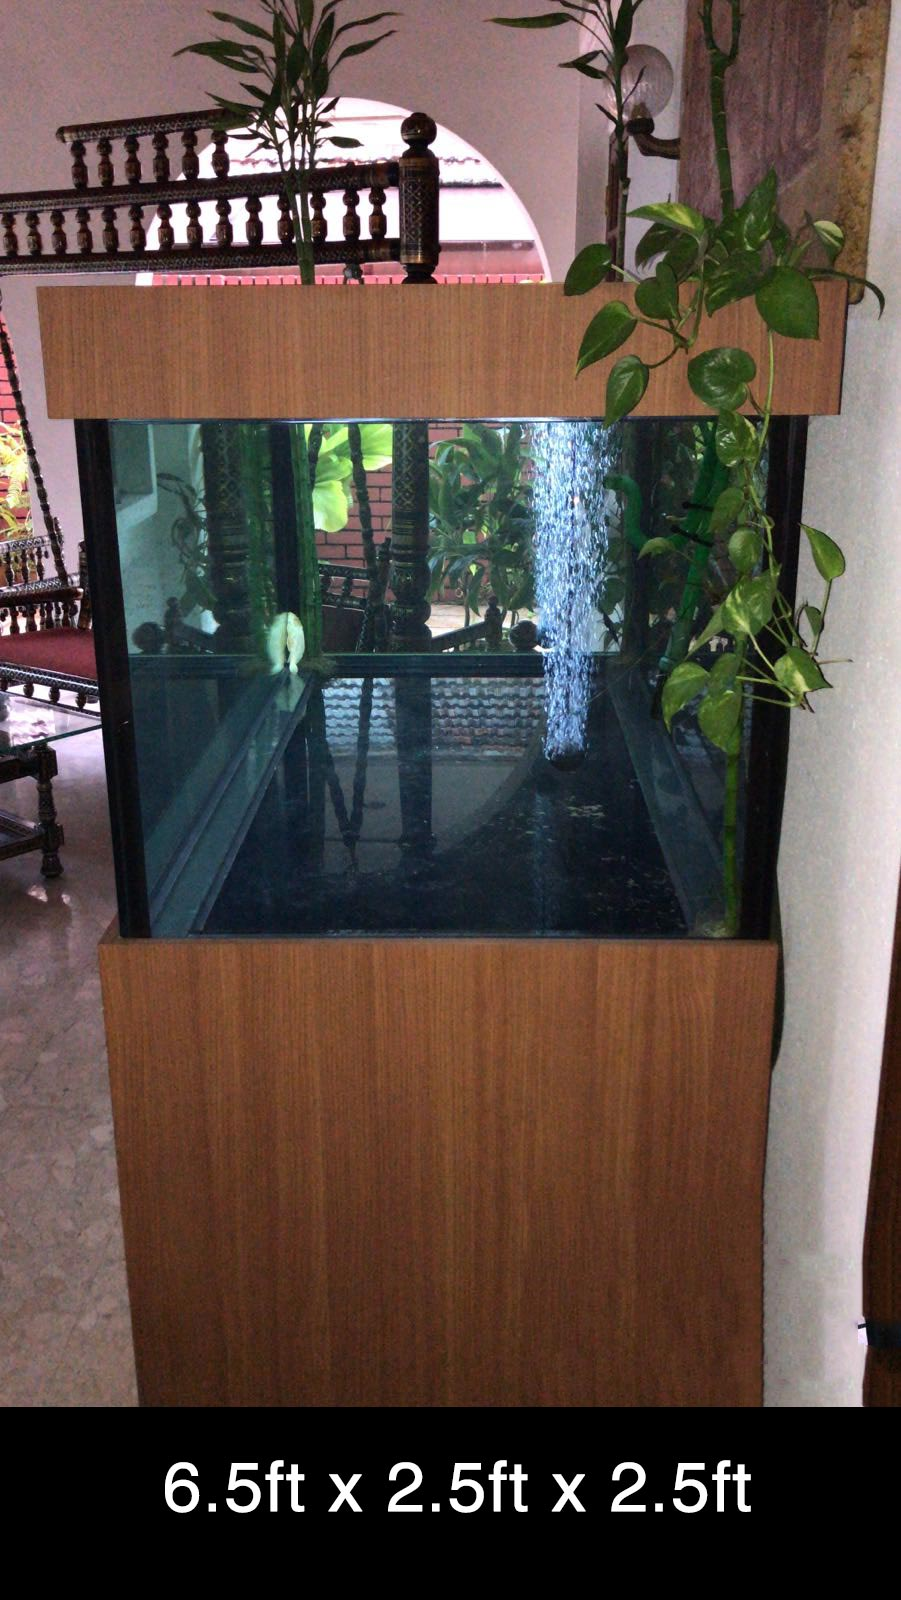 refurbished aquarium for sale as second hand